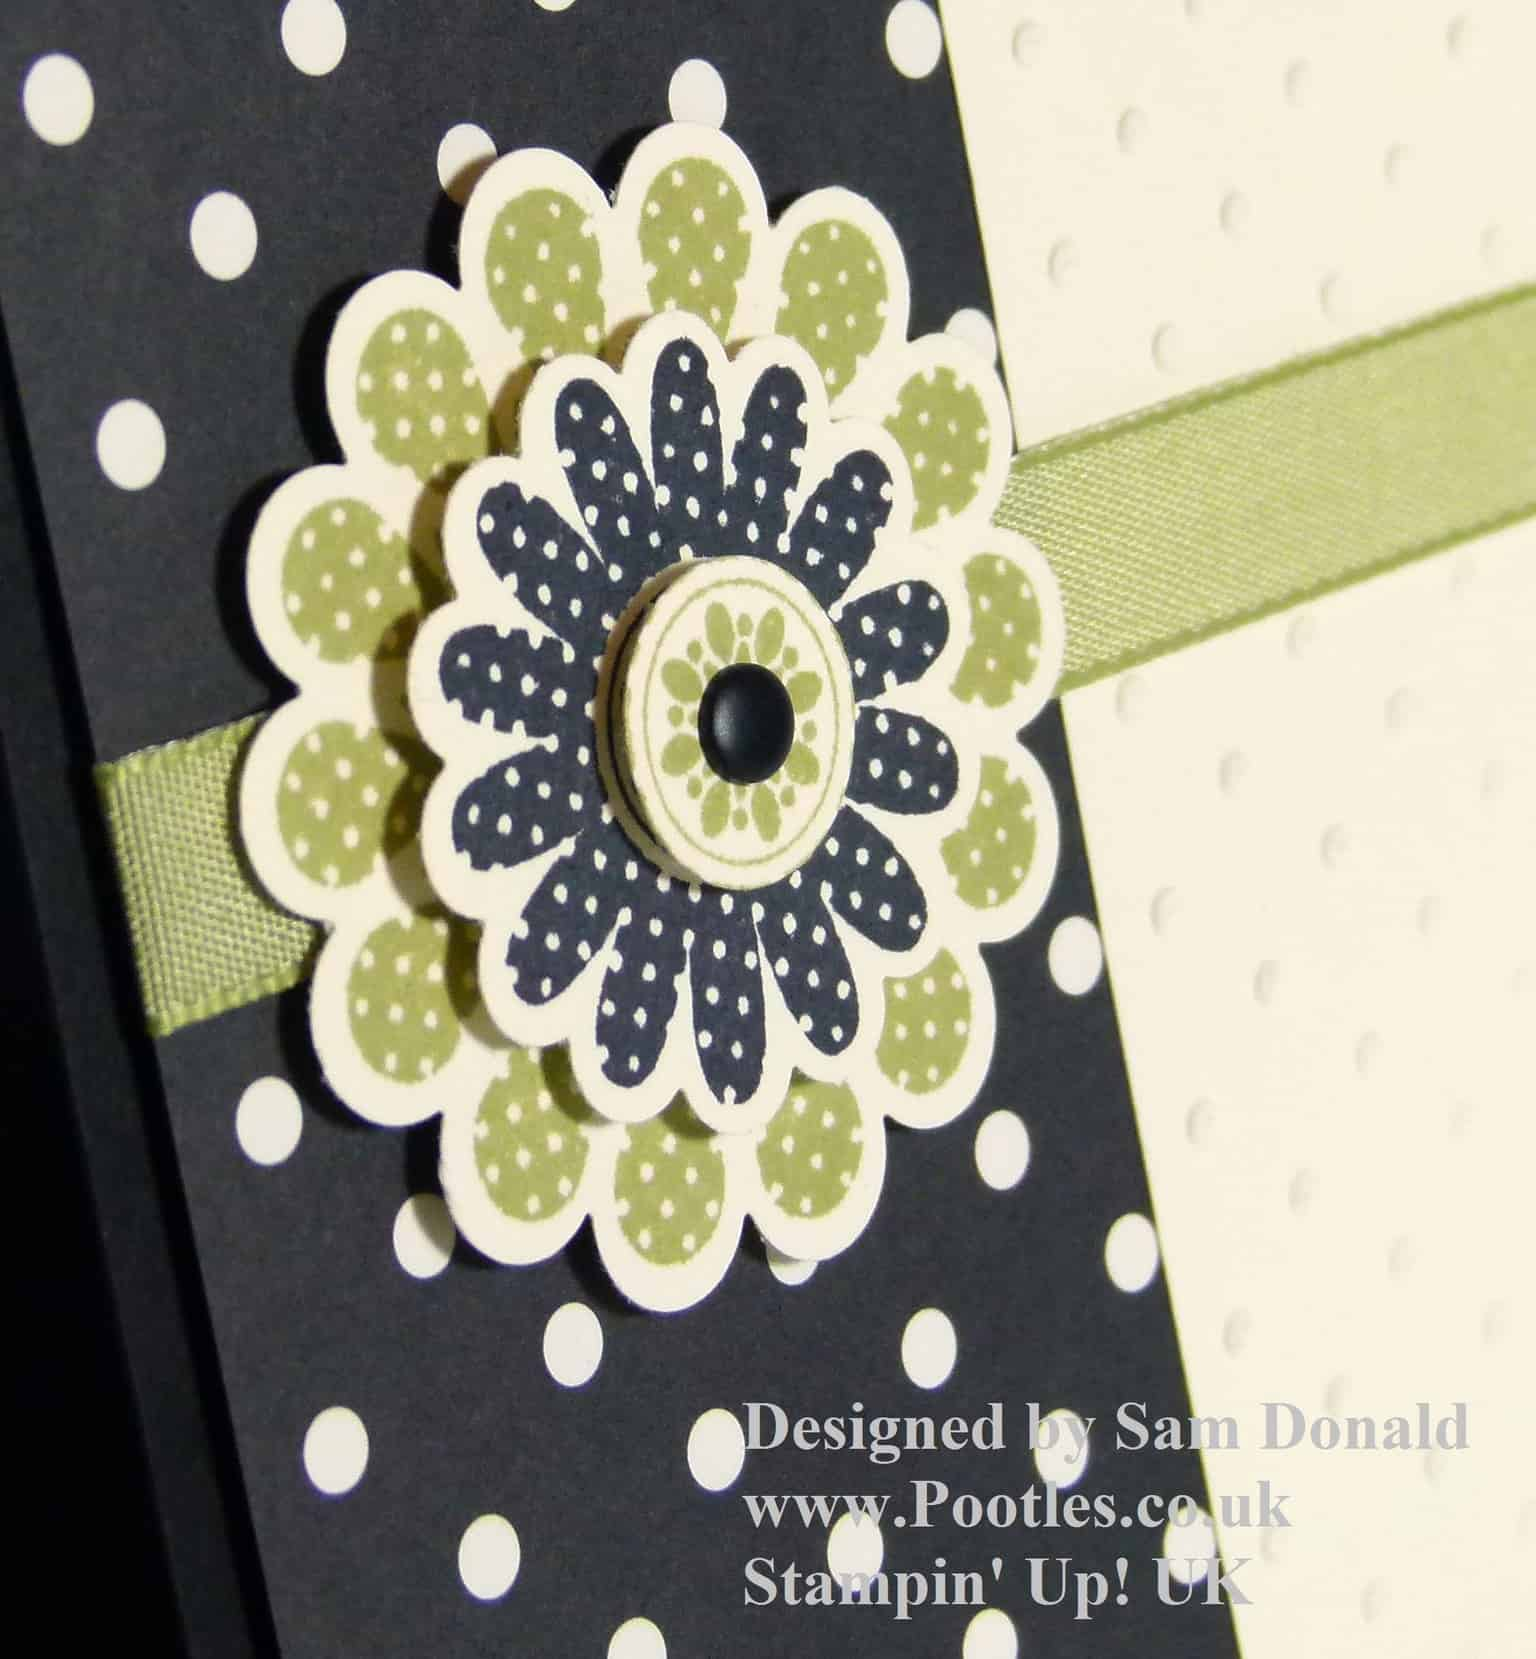 POOTLES Stampin Up Polka Dot Pear Pizzazz 3